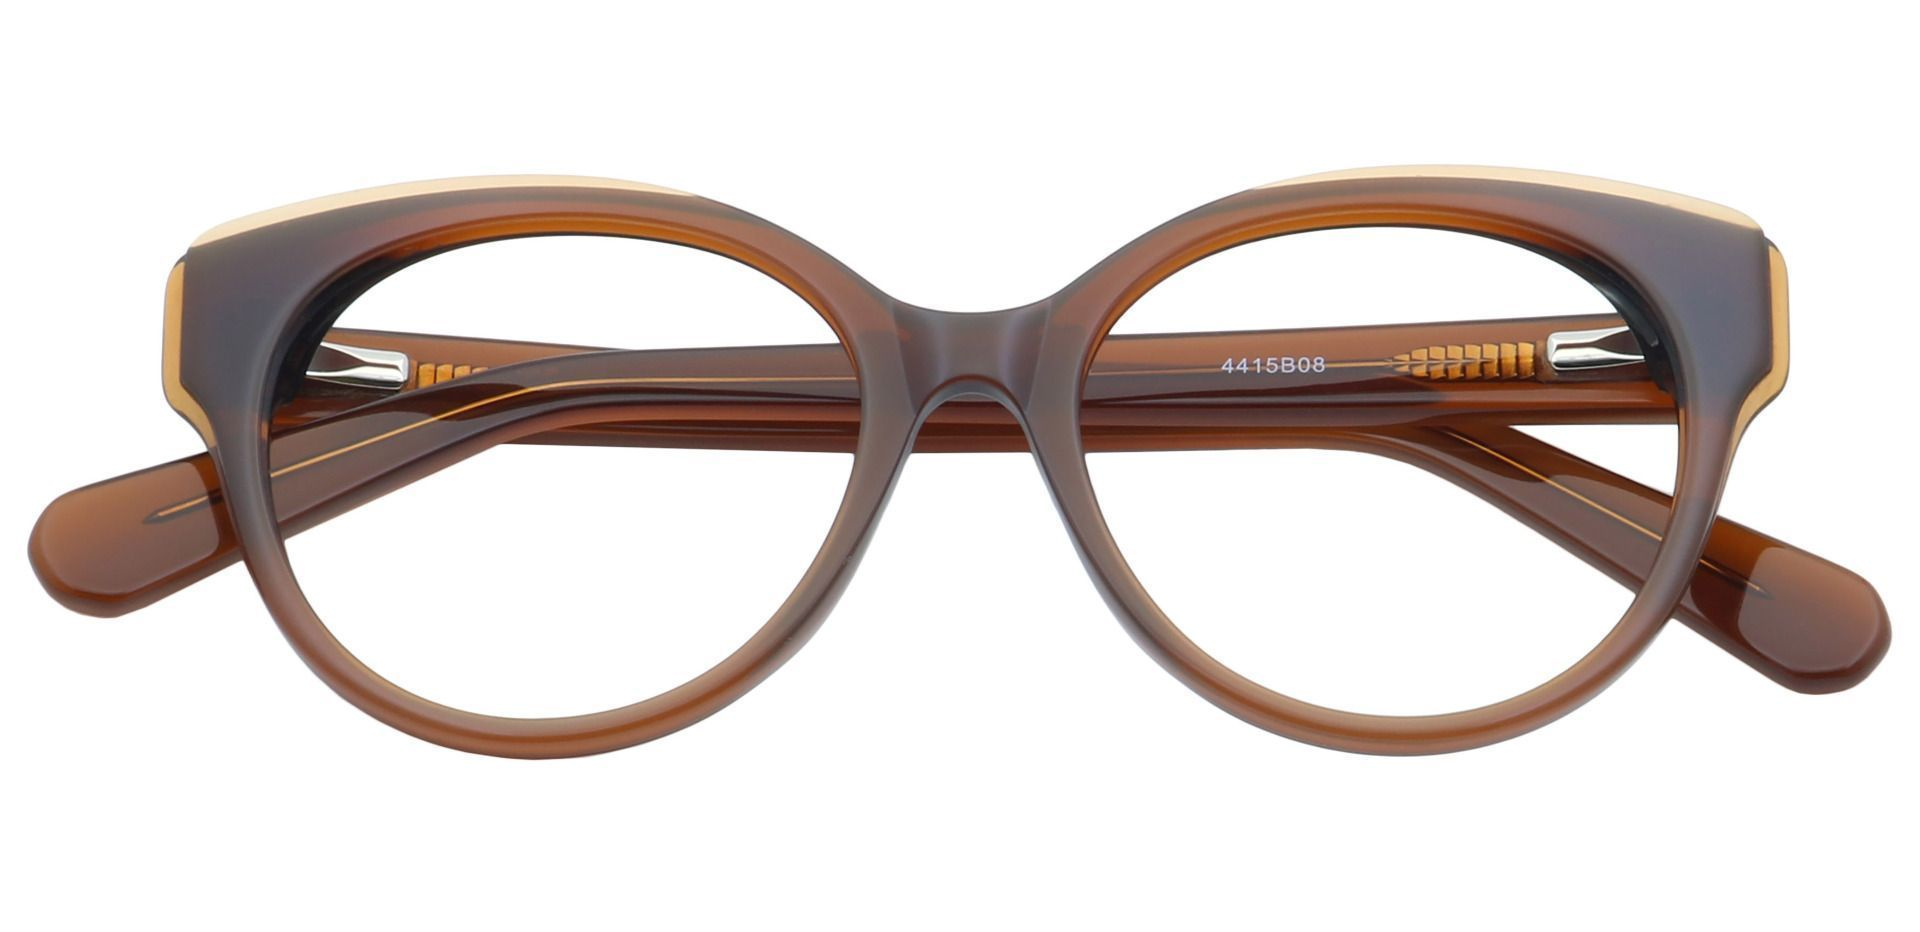 DJ Oval Progressive Glasses - Caramel